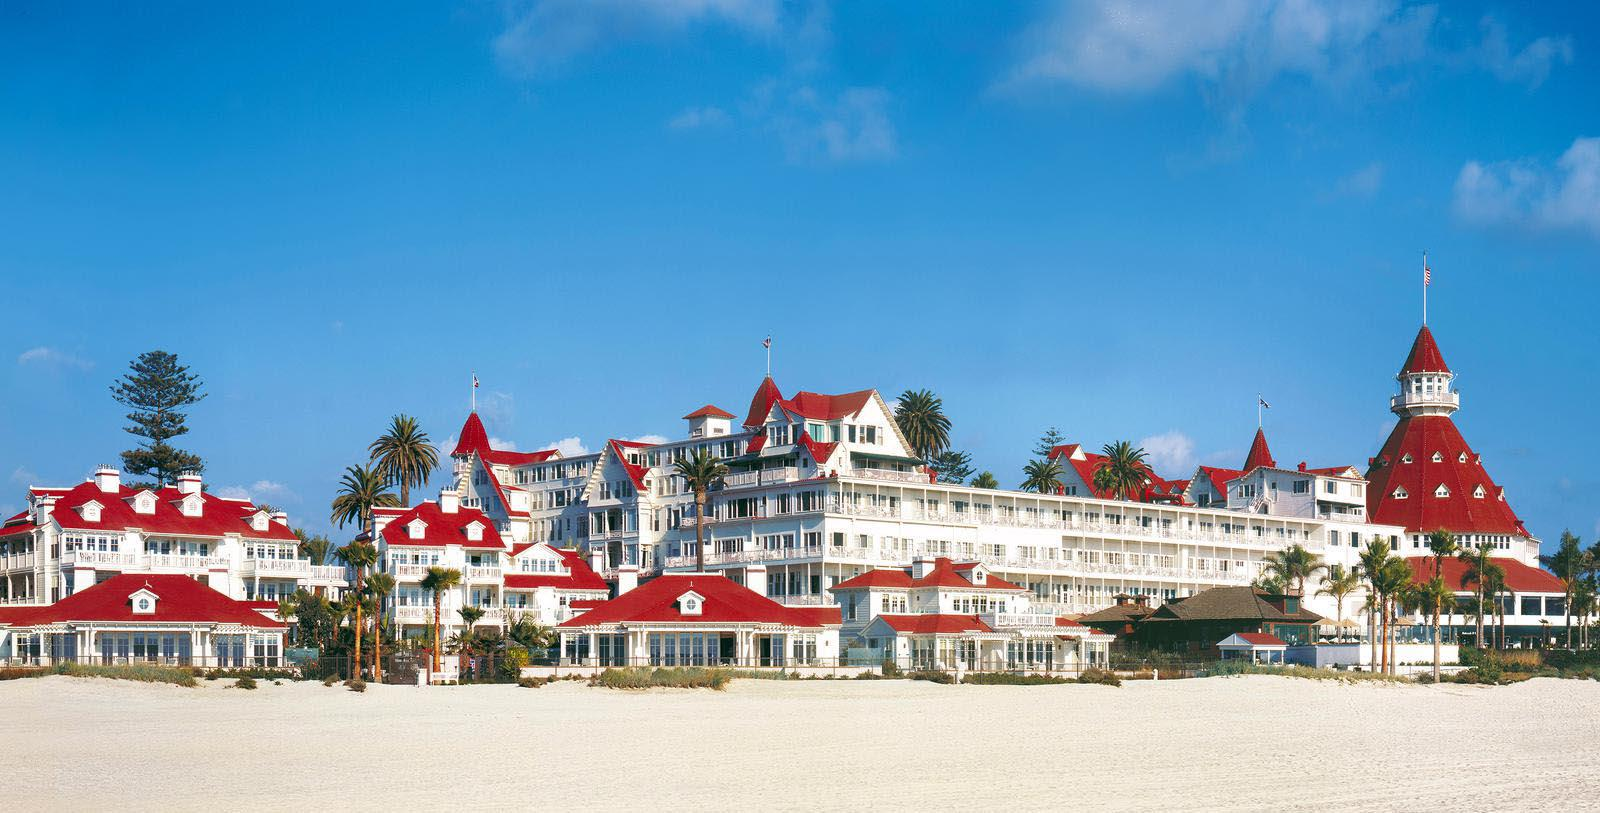 Image of Exterior View from Beach, Hotel del Coronado in Coronado, California, 1888, Member of Historic Hotels of America, Overview